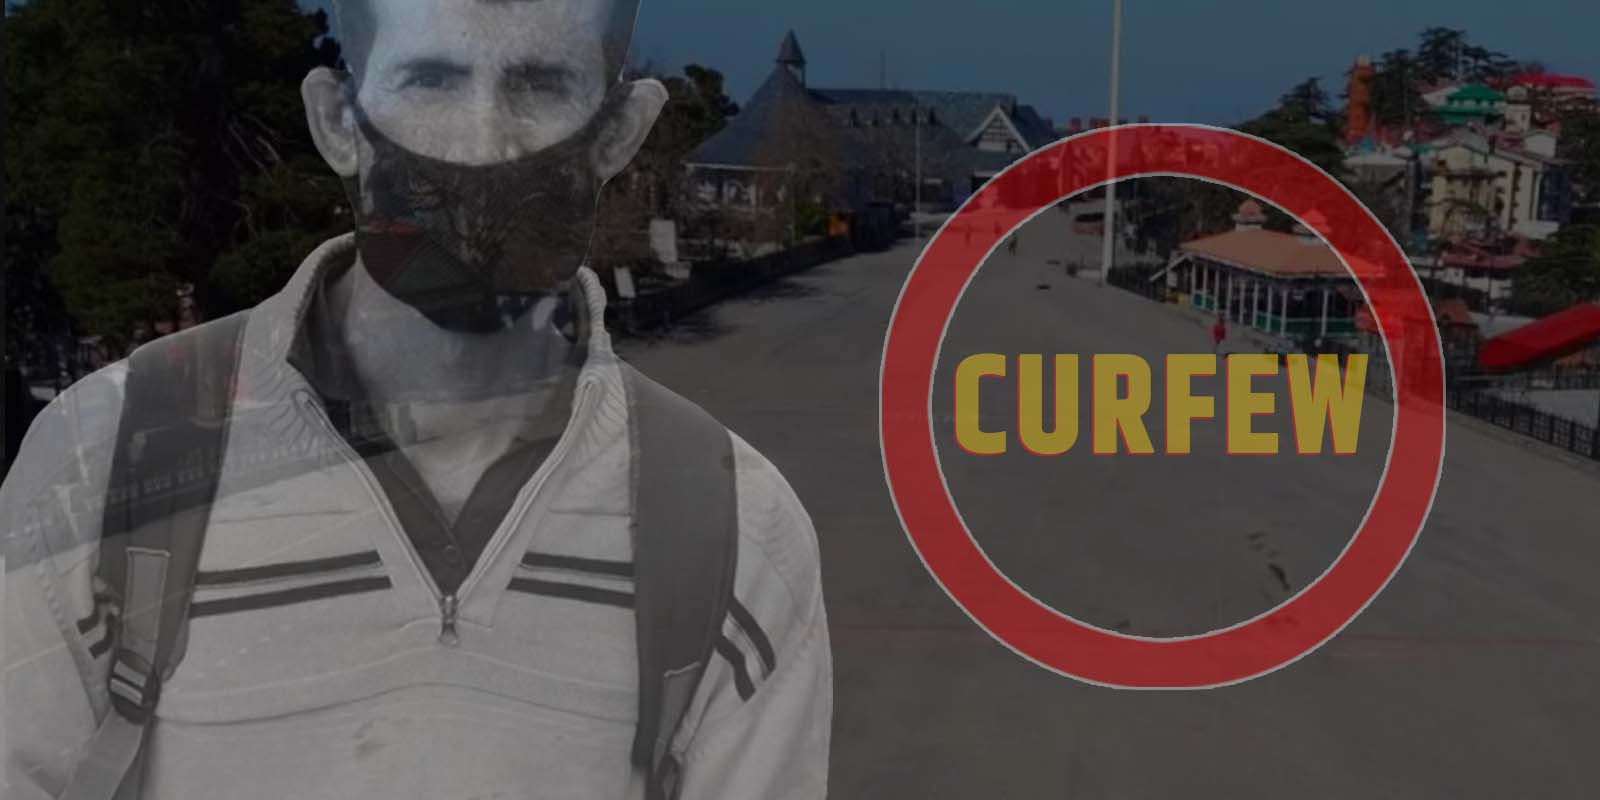 Curfew in Himachal Pradesh from march 24